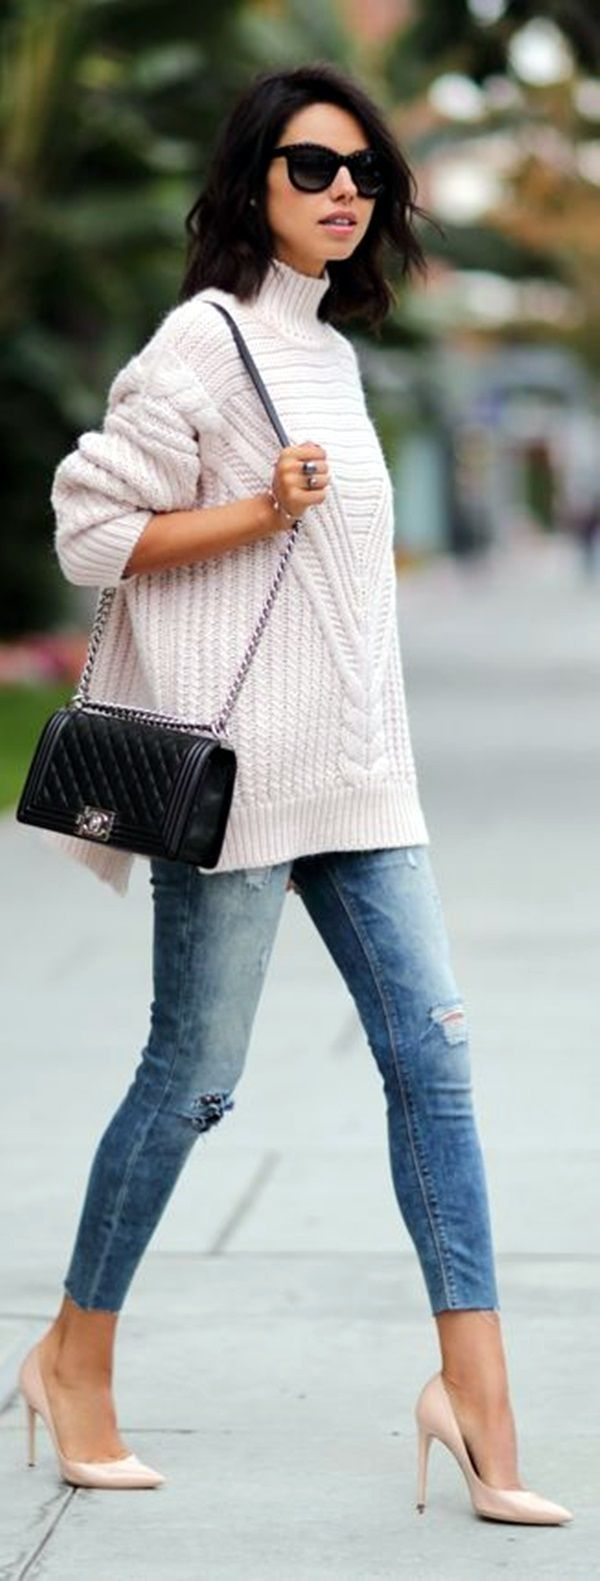 40 Cute Oversized Sweater Outfit Ideas For 2015 | Business dresses ...